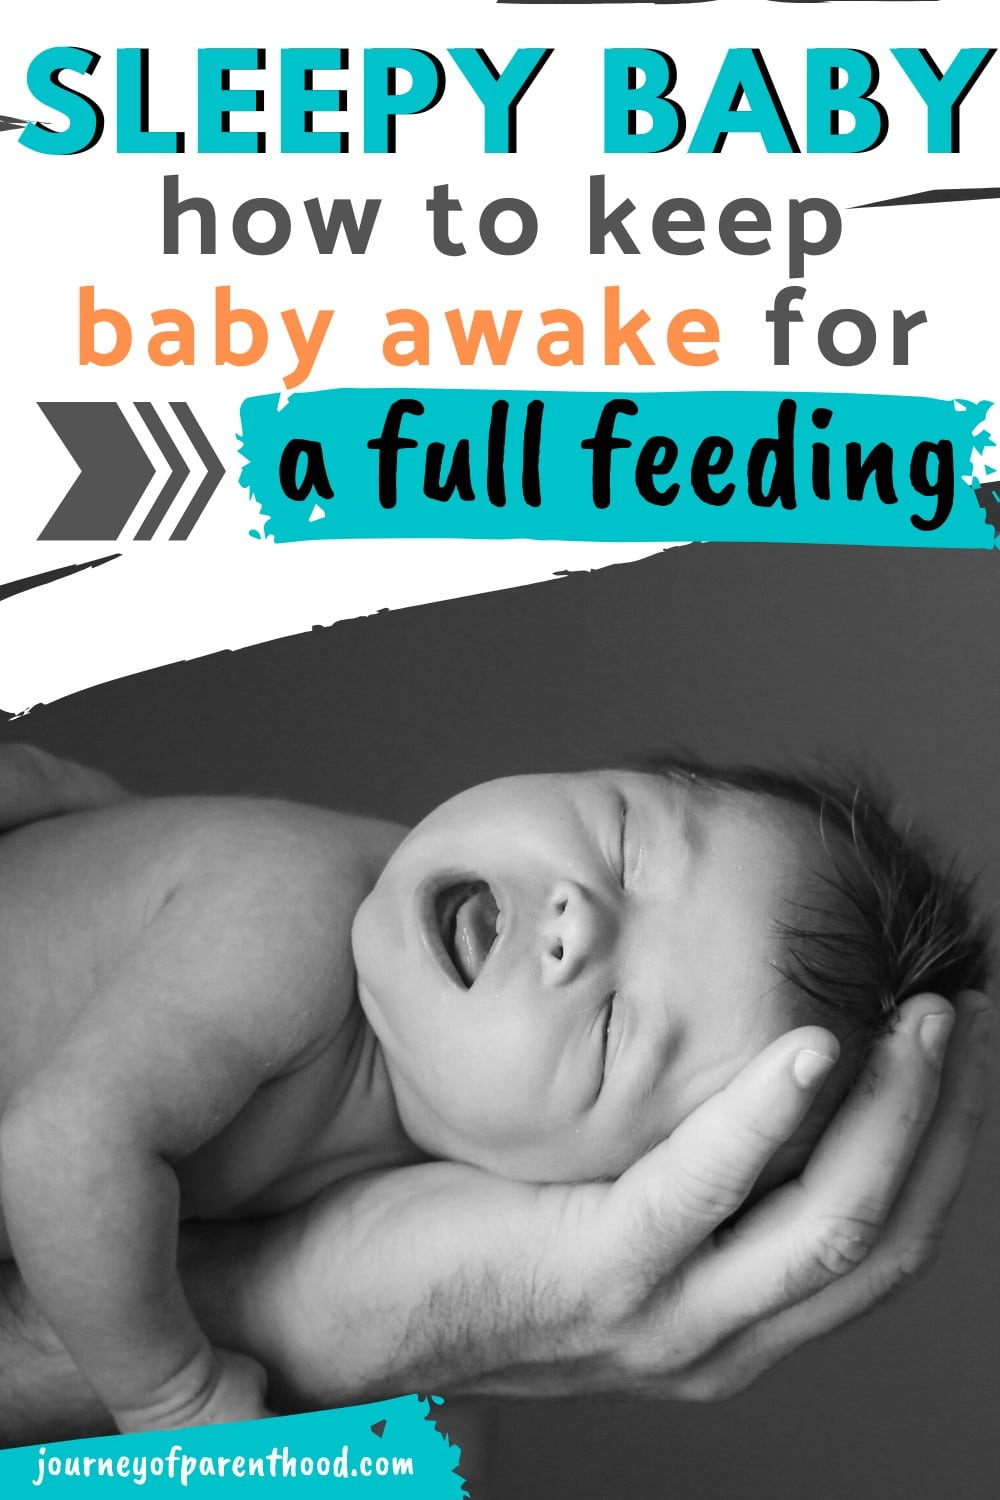 Keeping a Sleepy Newborn Awake for Feedings: How to Make Baby Stay Awhile While Breastfeeding